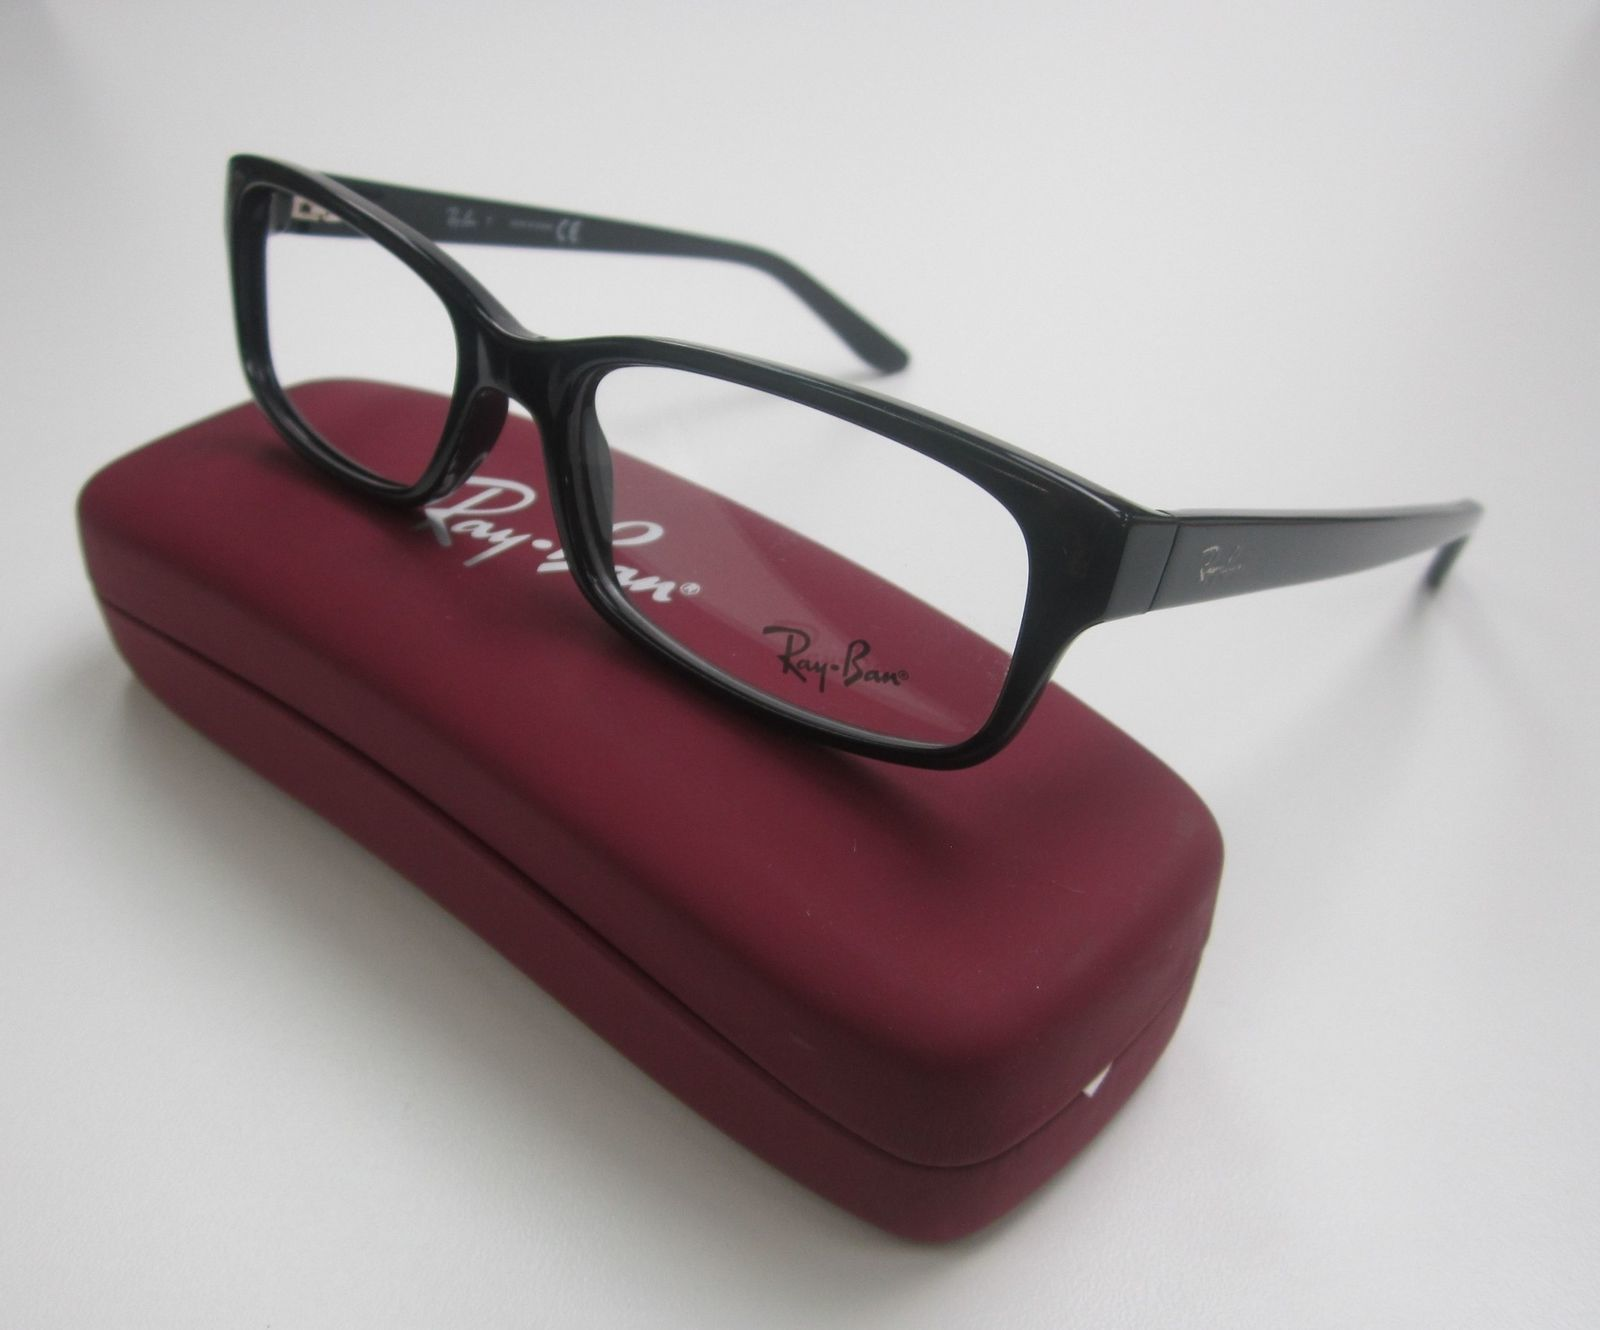 4778ce10e0 RayBan RB 5187 2000 Eyeglasses 52 16 140 and 50 similar items. S l1600